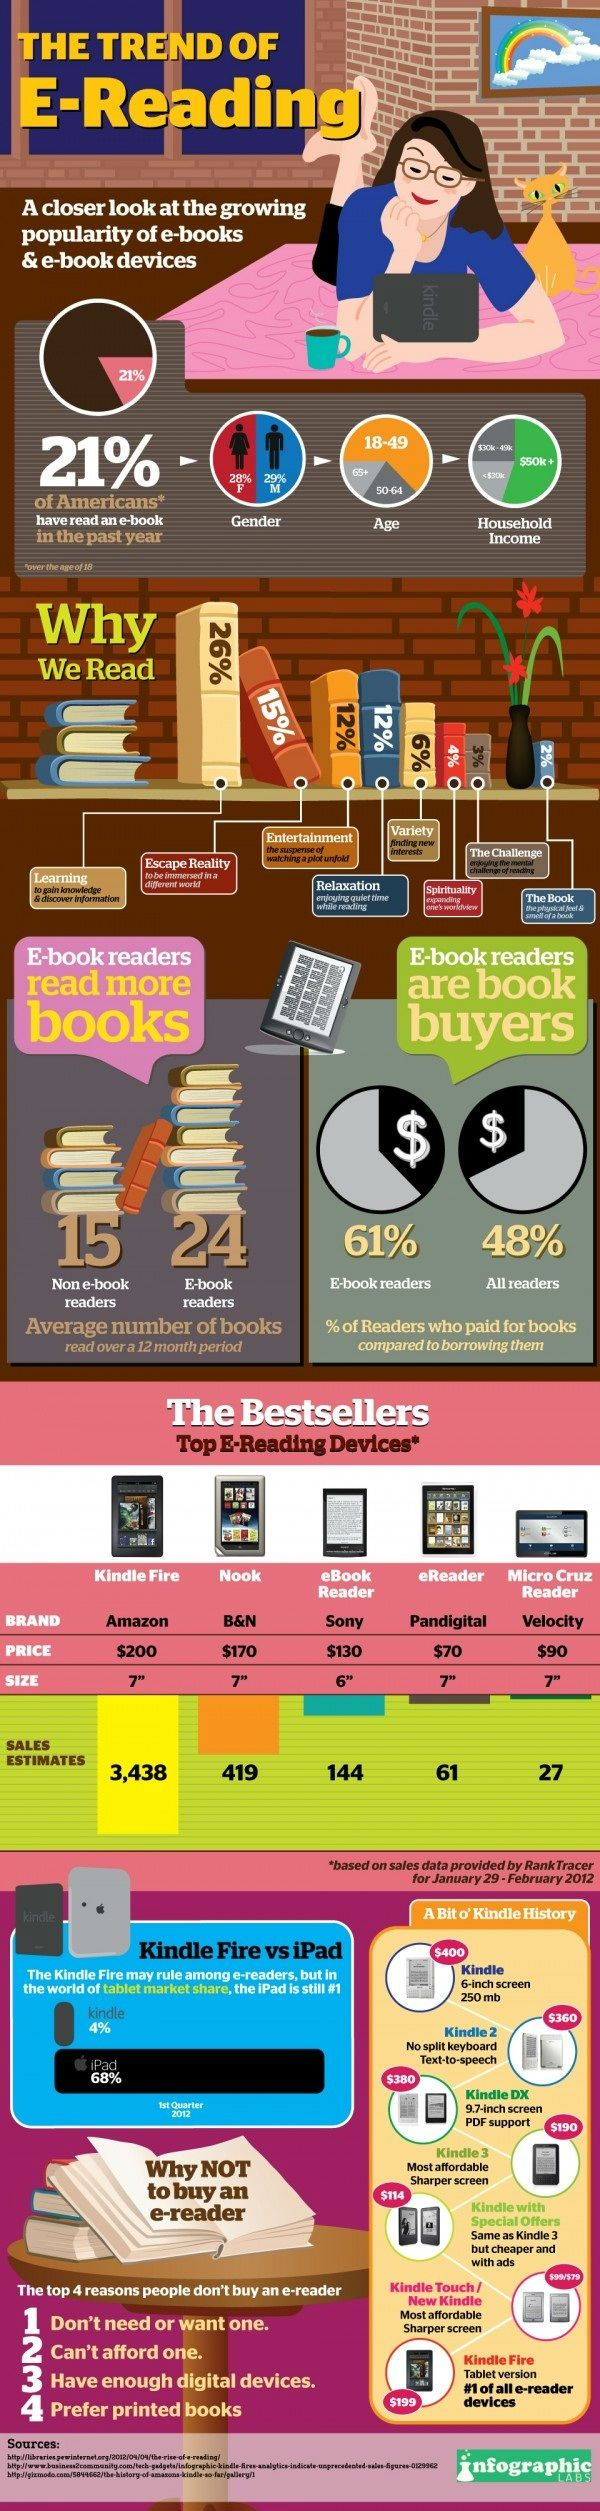 Do Ereader Owners Read More Books? [infographic]